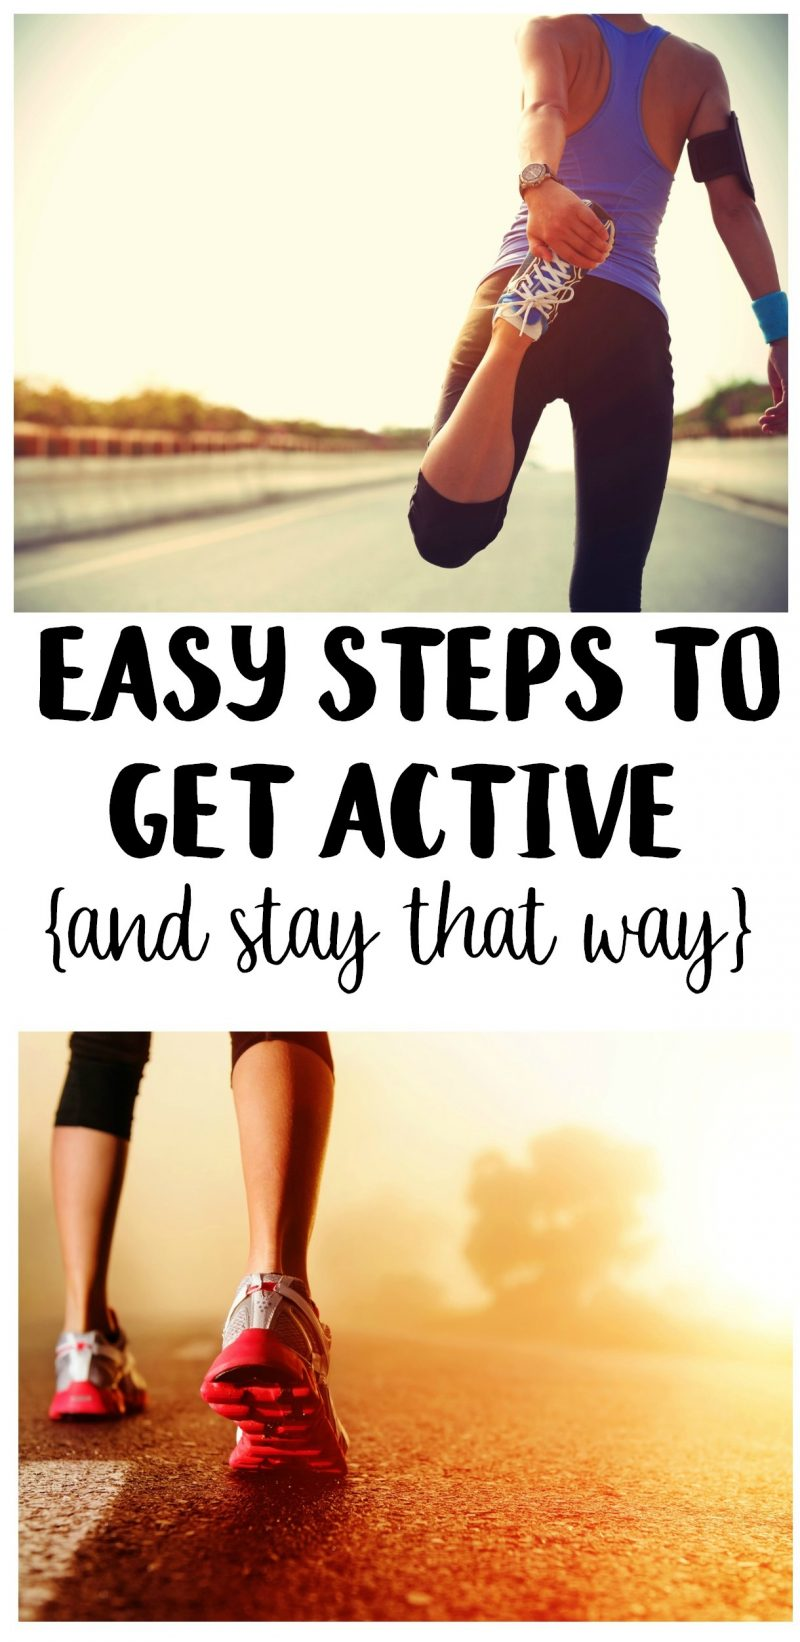 Whether you're working on losing weight or the challenge of a general fitness journey, we all have to start somewhere! Get the motivation to prepare to get active and make your own plan or routine with these easy tips for getting fit as a beginner at home!